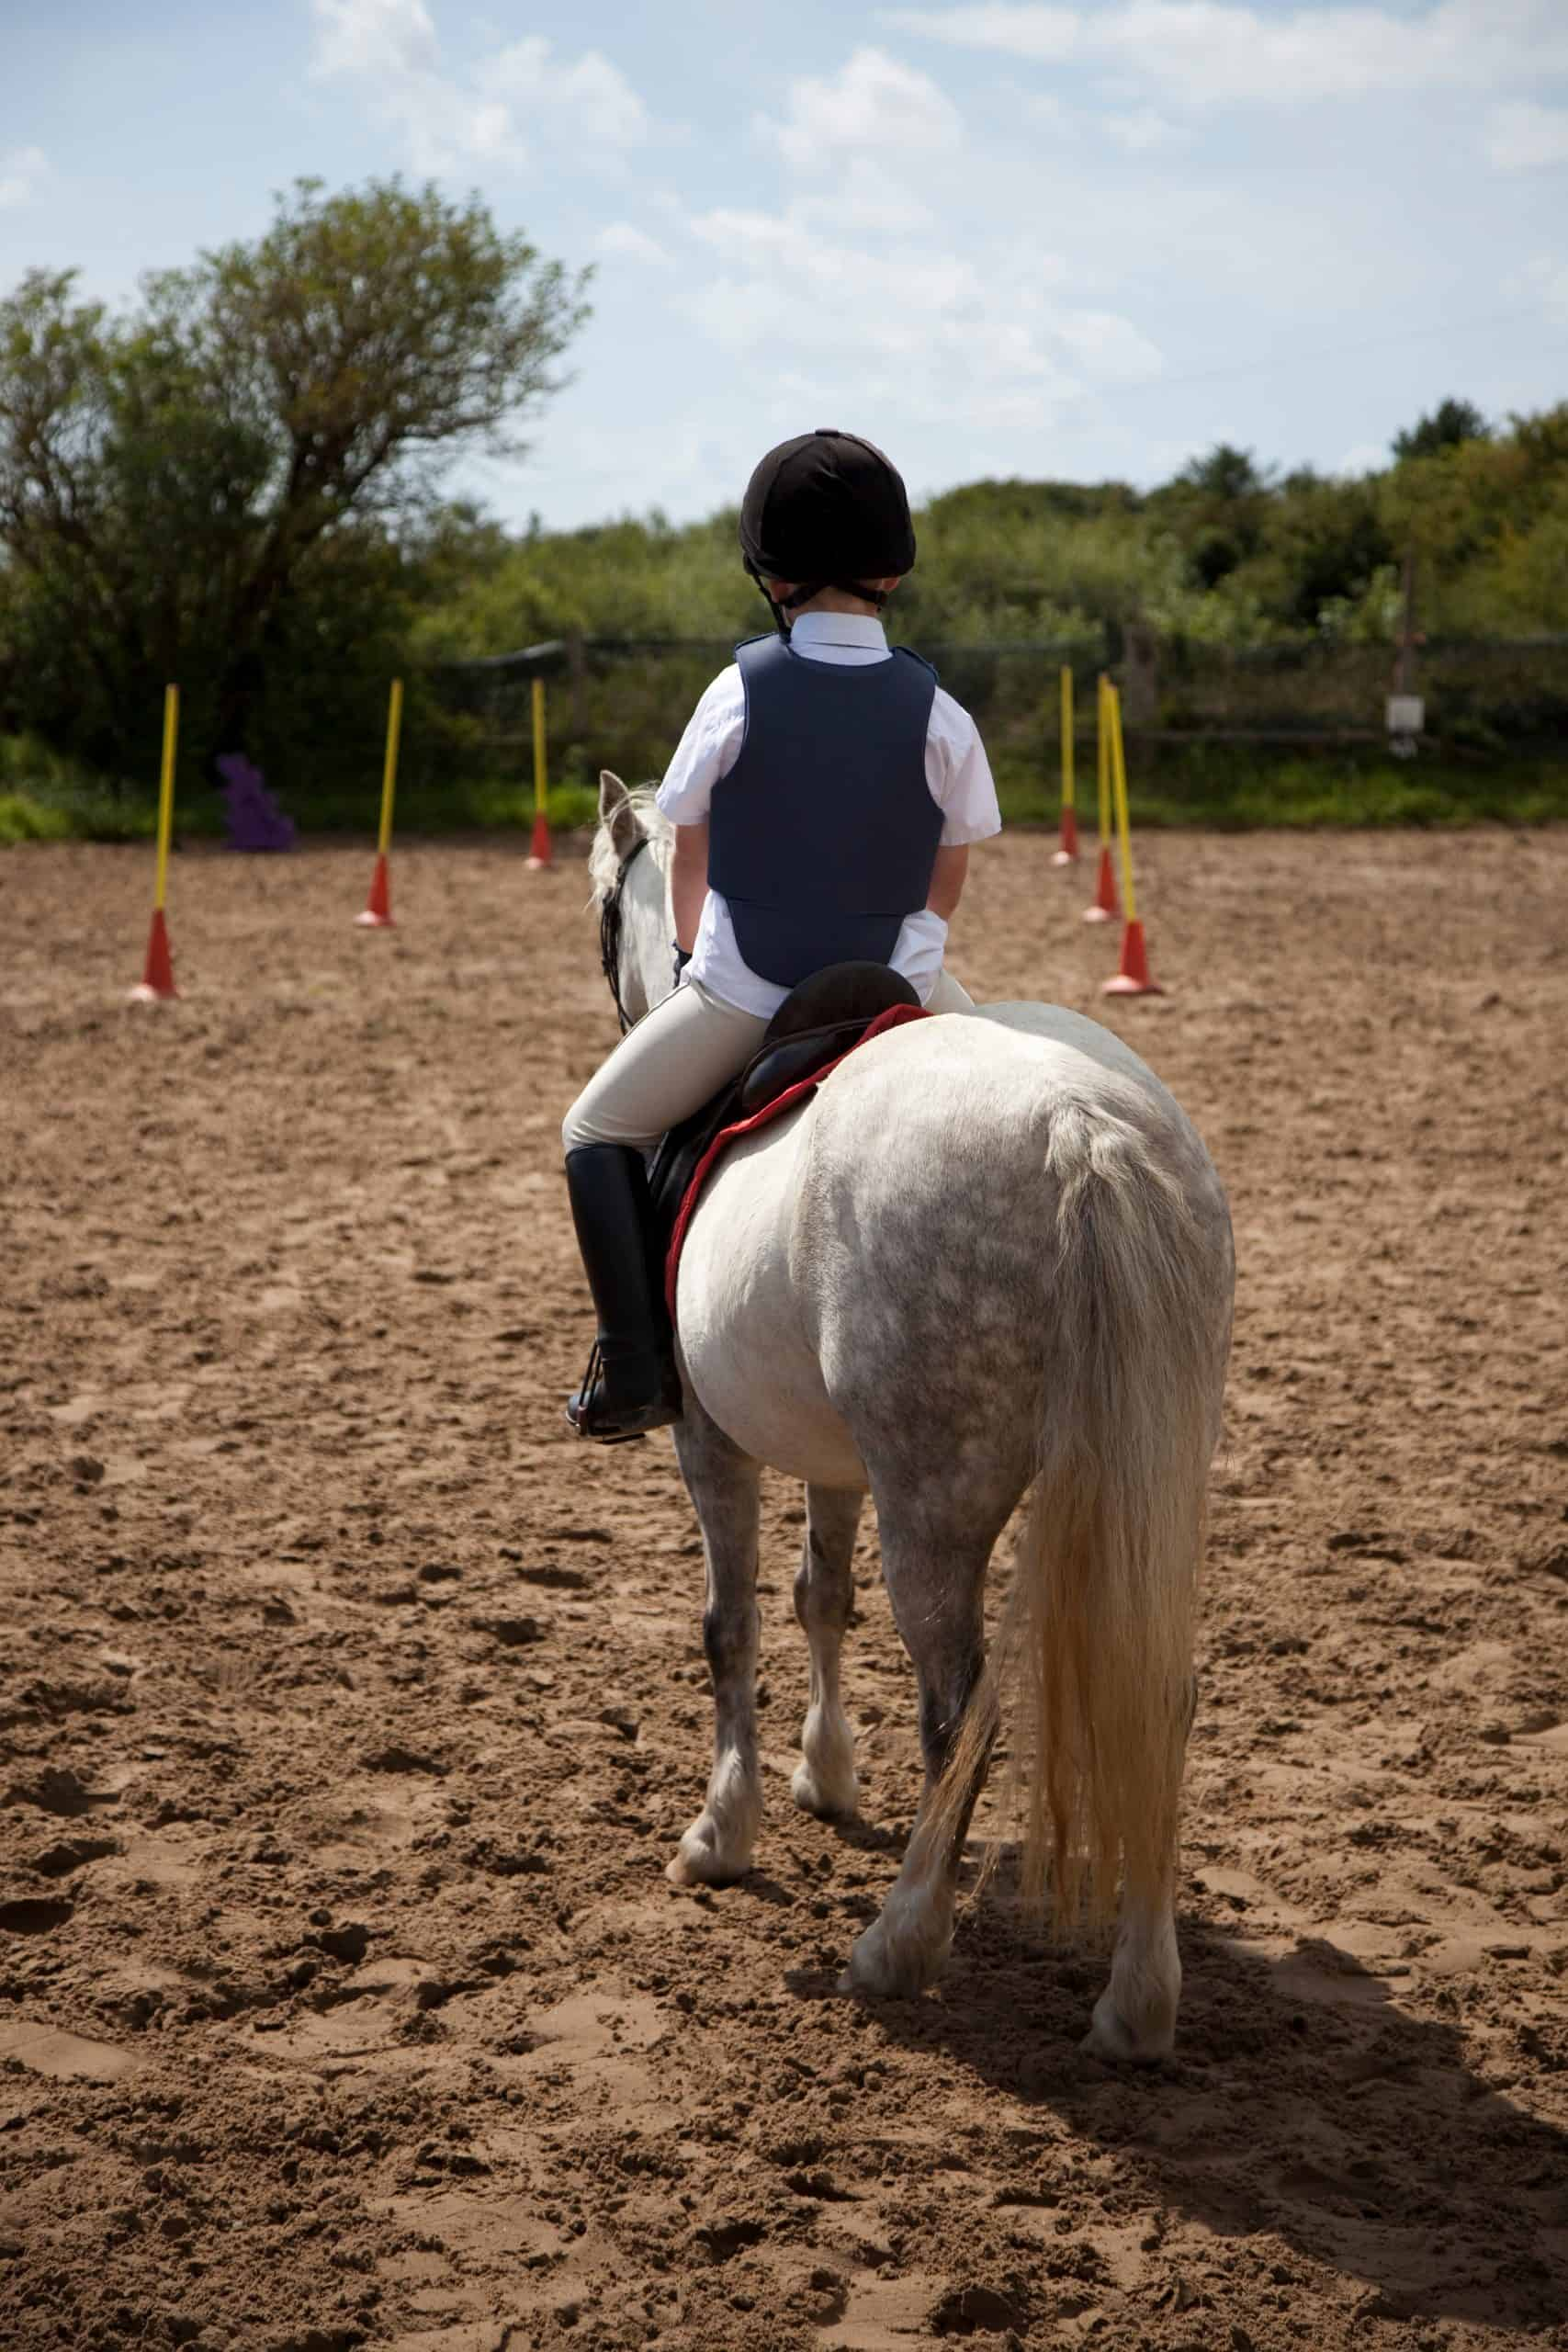 young rider appraising gymkhana course